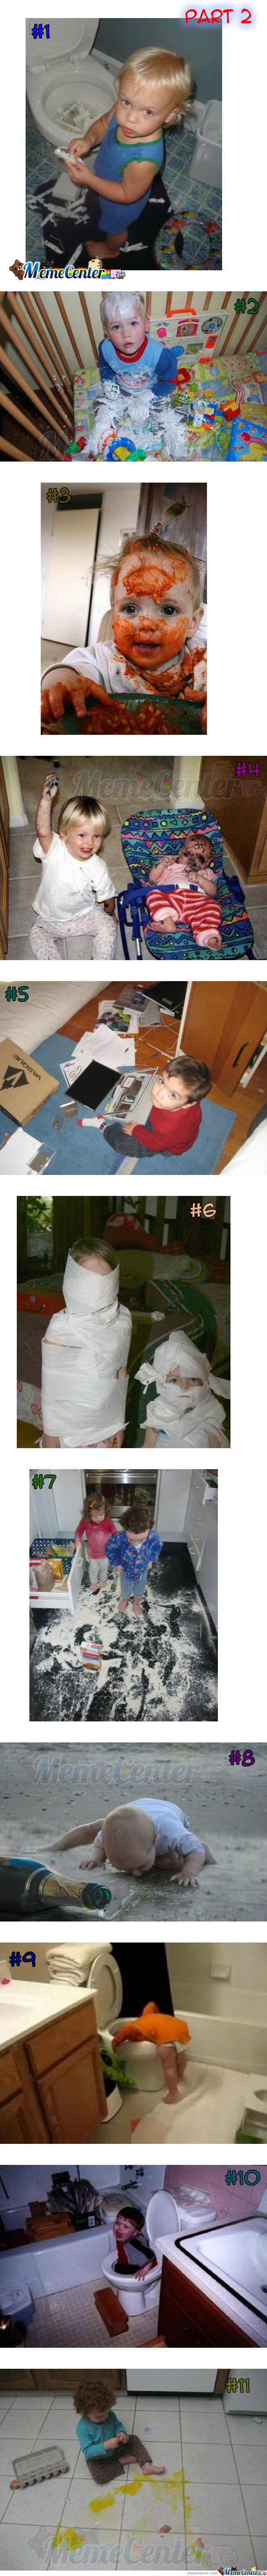 Reasons Why Children Should Not Be Left Unattended -> Part :2